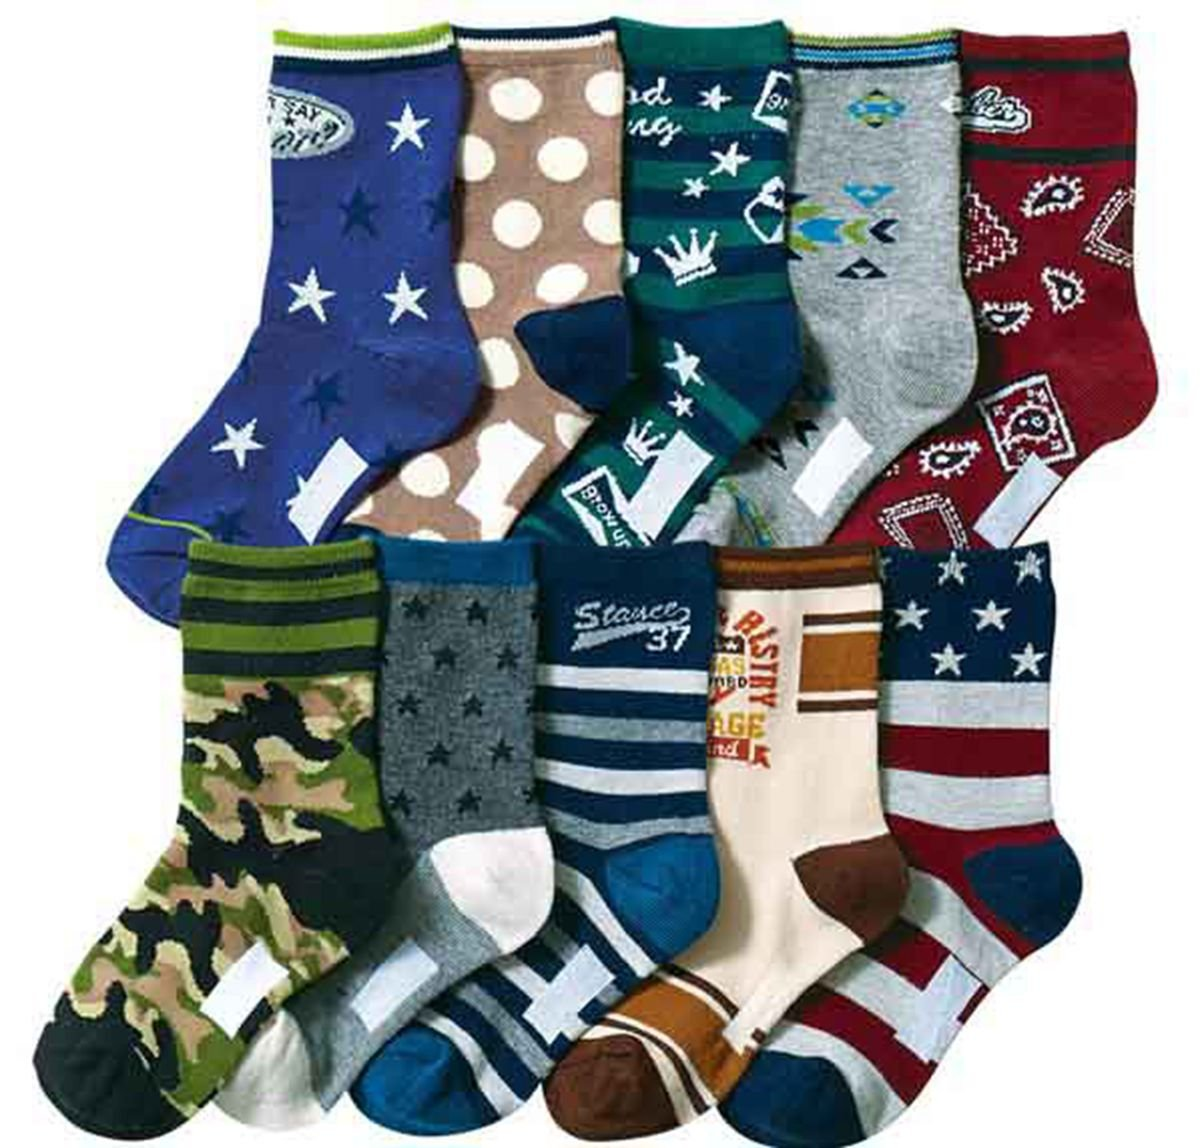 Boys Short Socks Fashion Camouflage Cotton Basic Crew Kids Socks 10 Pair Pack